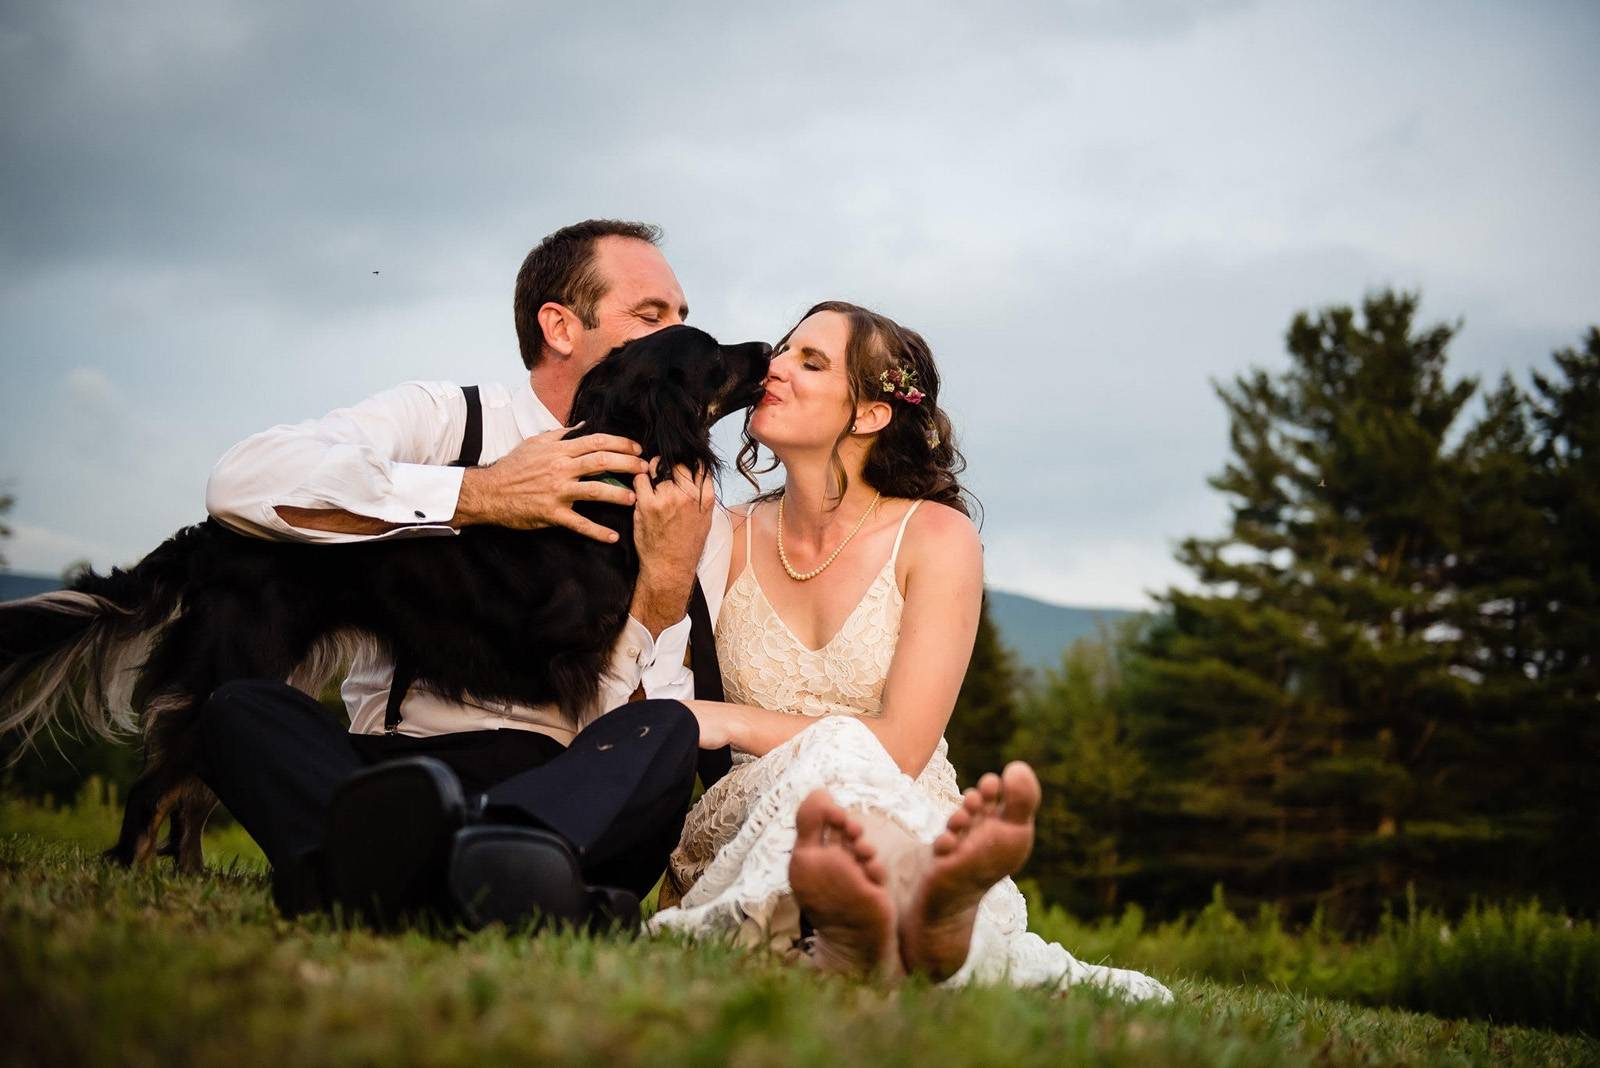 Dog licking bride's nose on wedding day